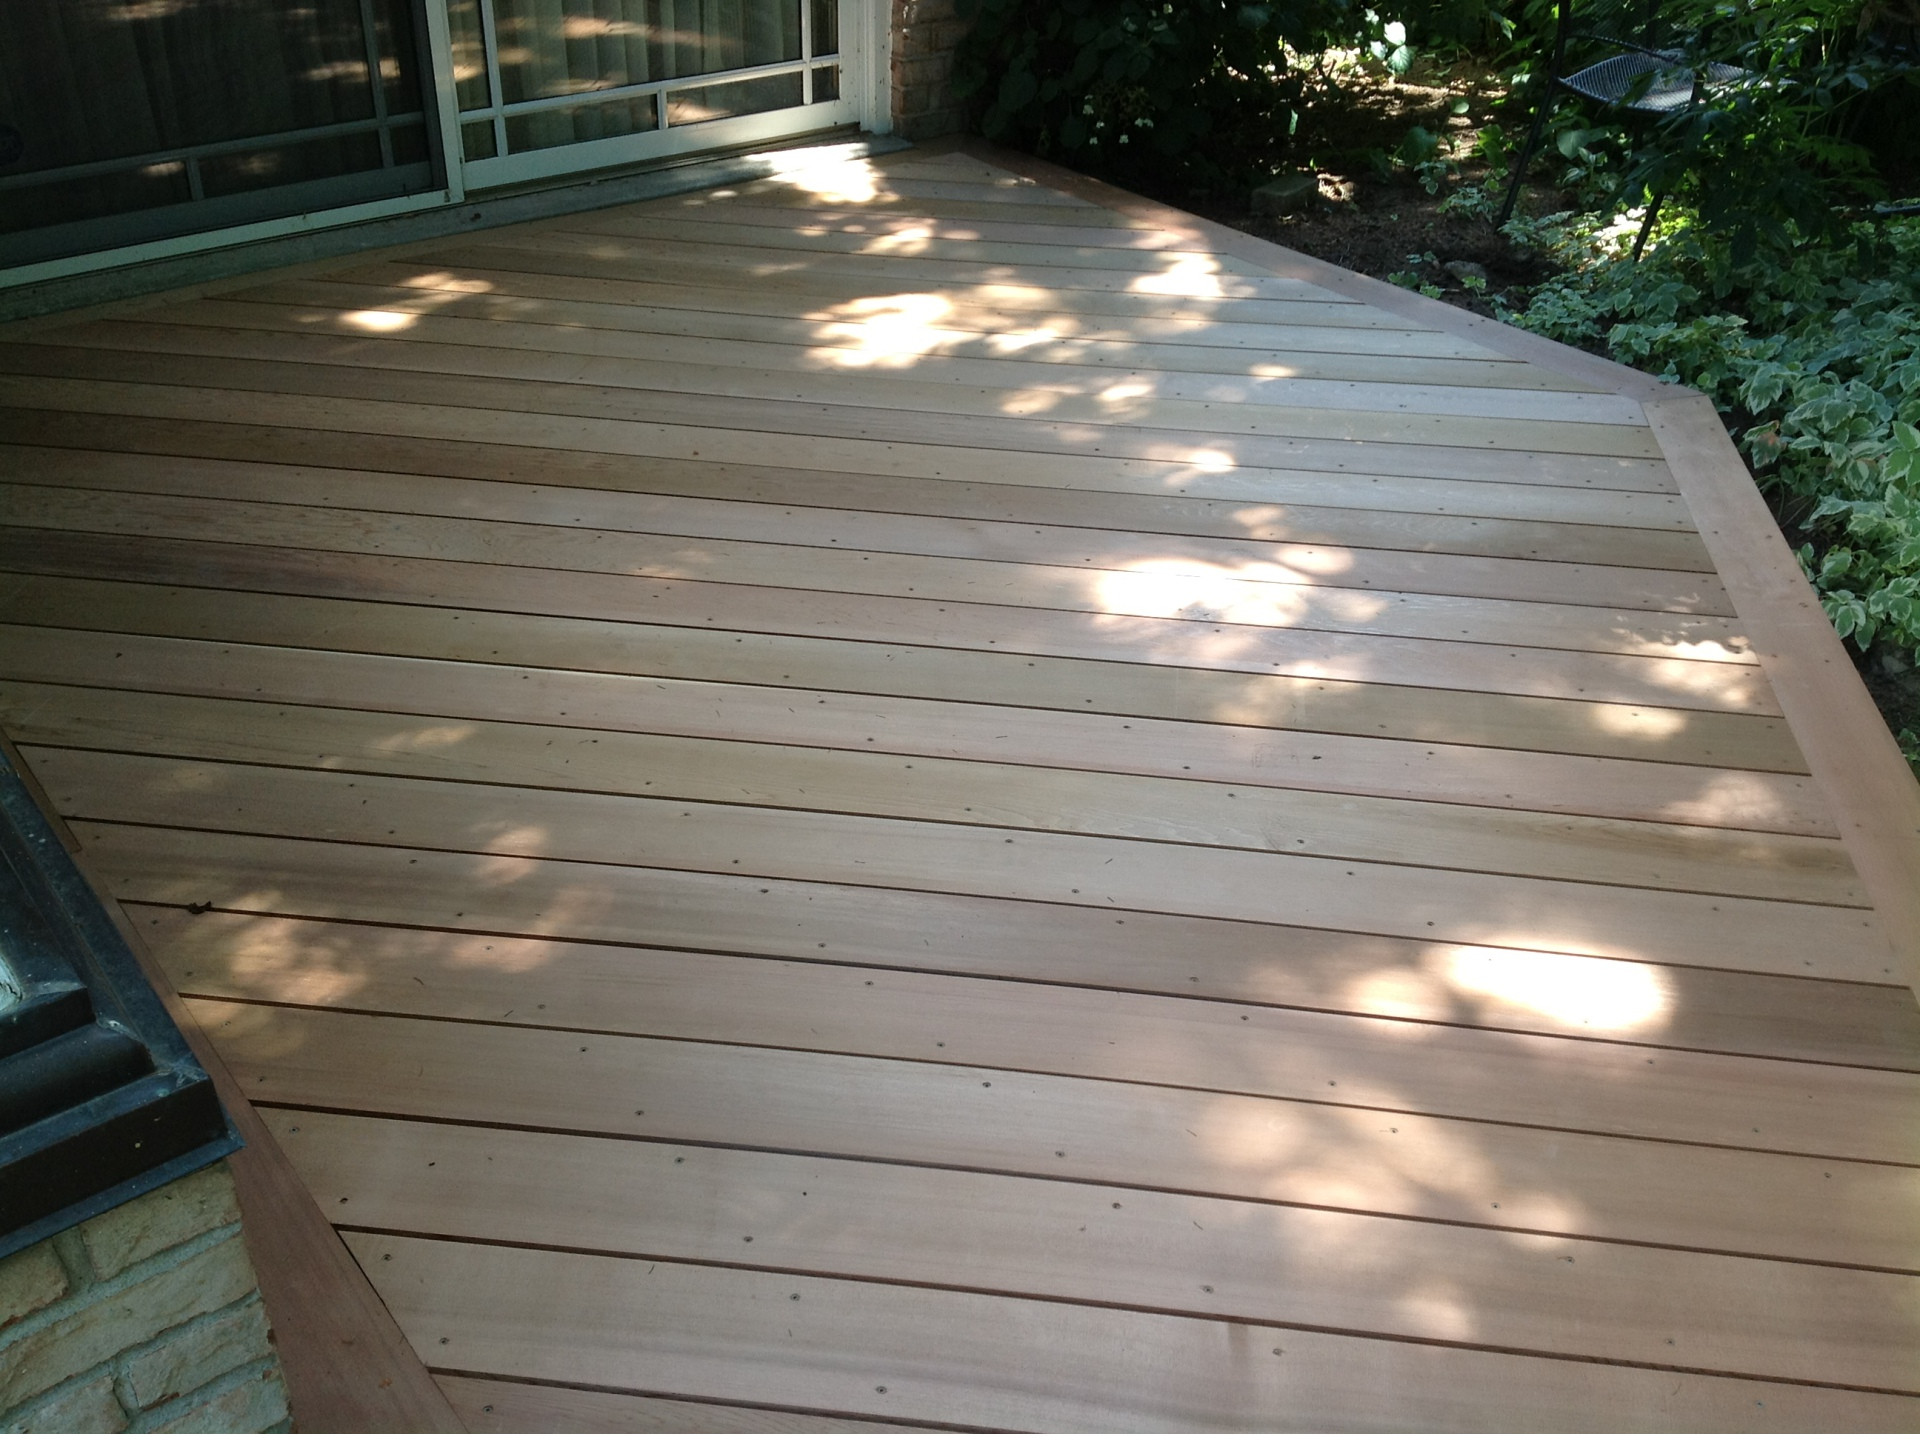 Cedar deck with diagonal design